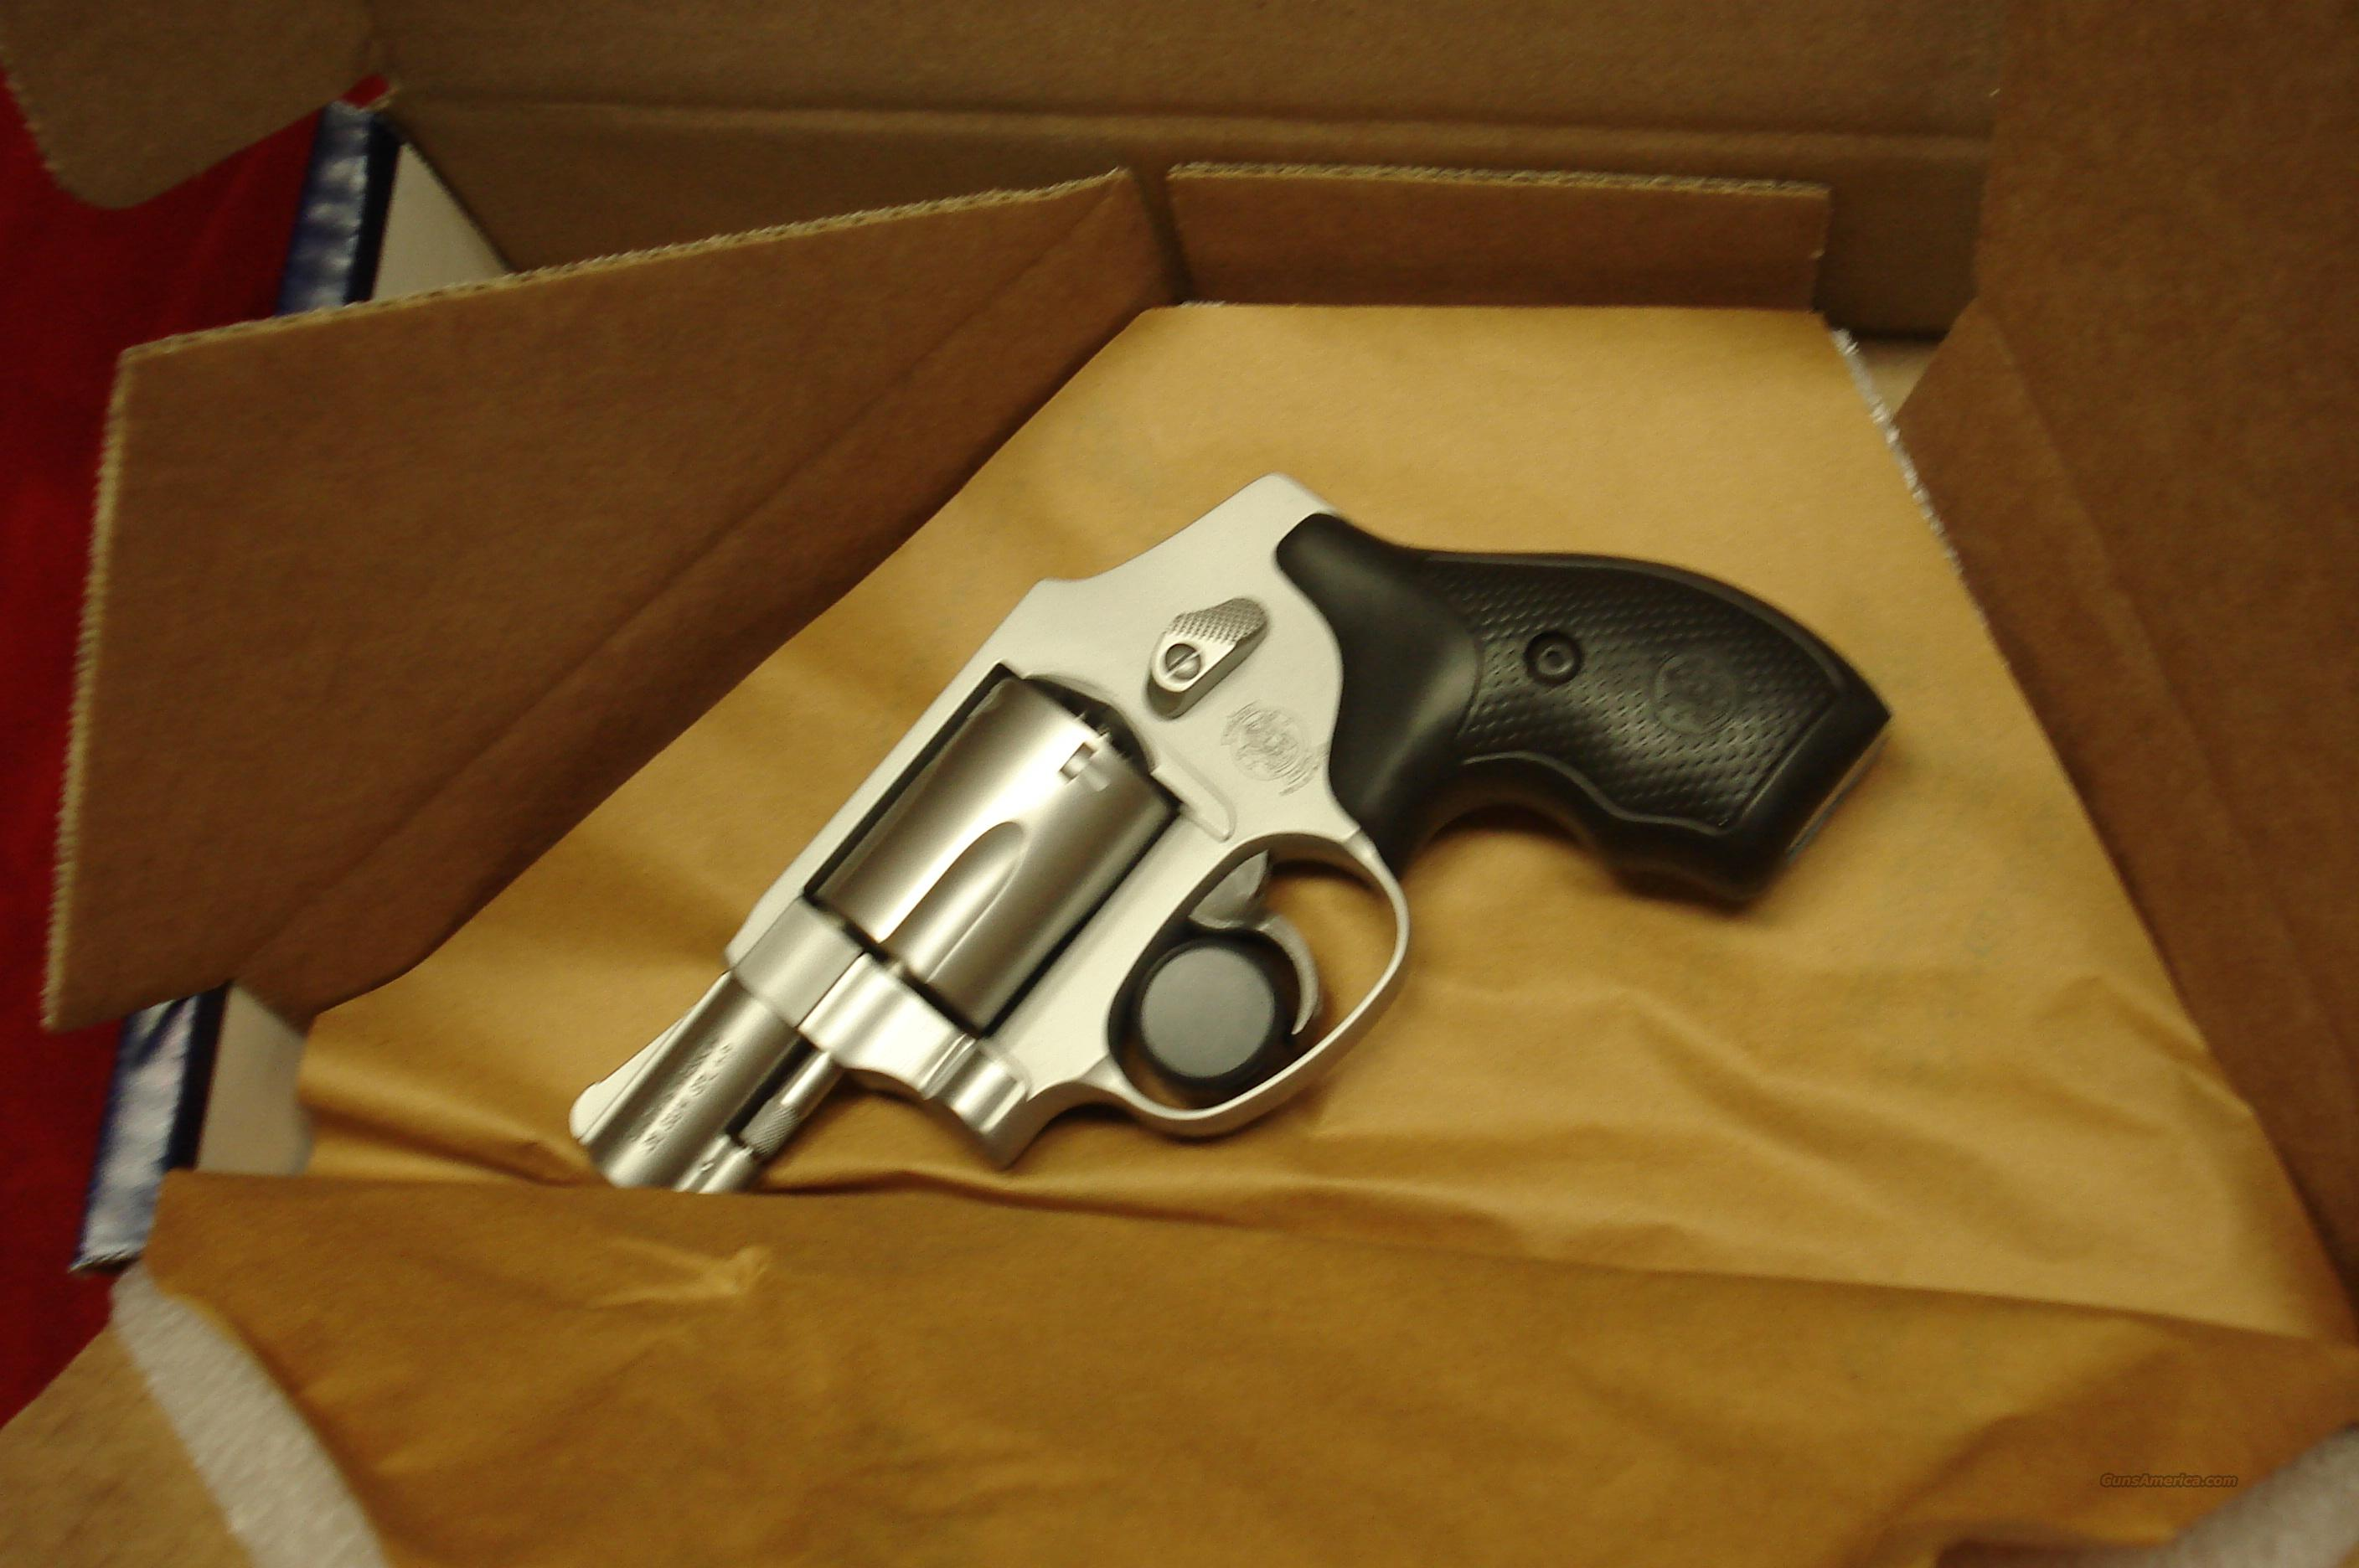 SMITH AND WESSON 642 AIRWEIGHT NEW ( NO LOCK)  Guns > Pistols > Smith & Wesson Revolvers > Pocket Pistols